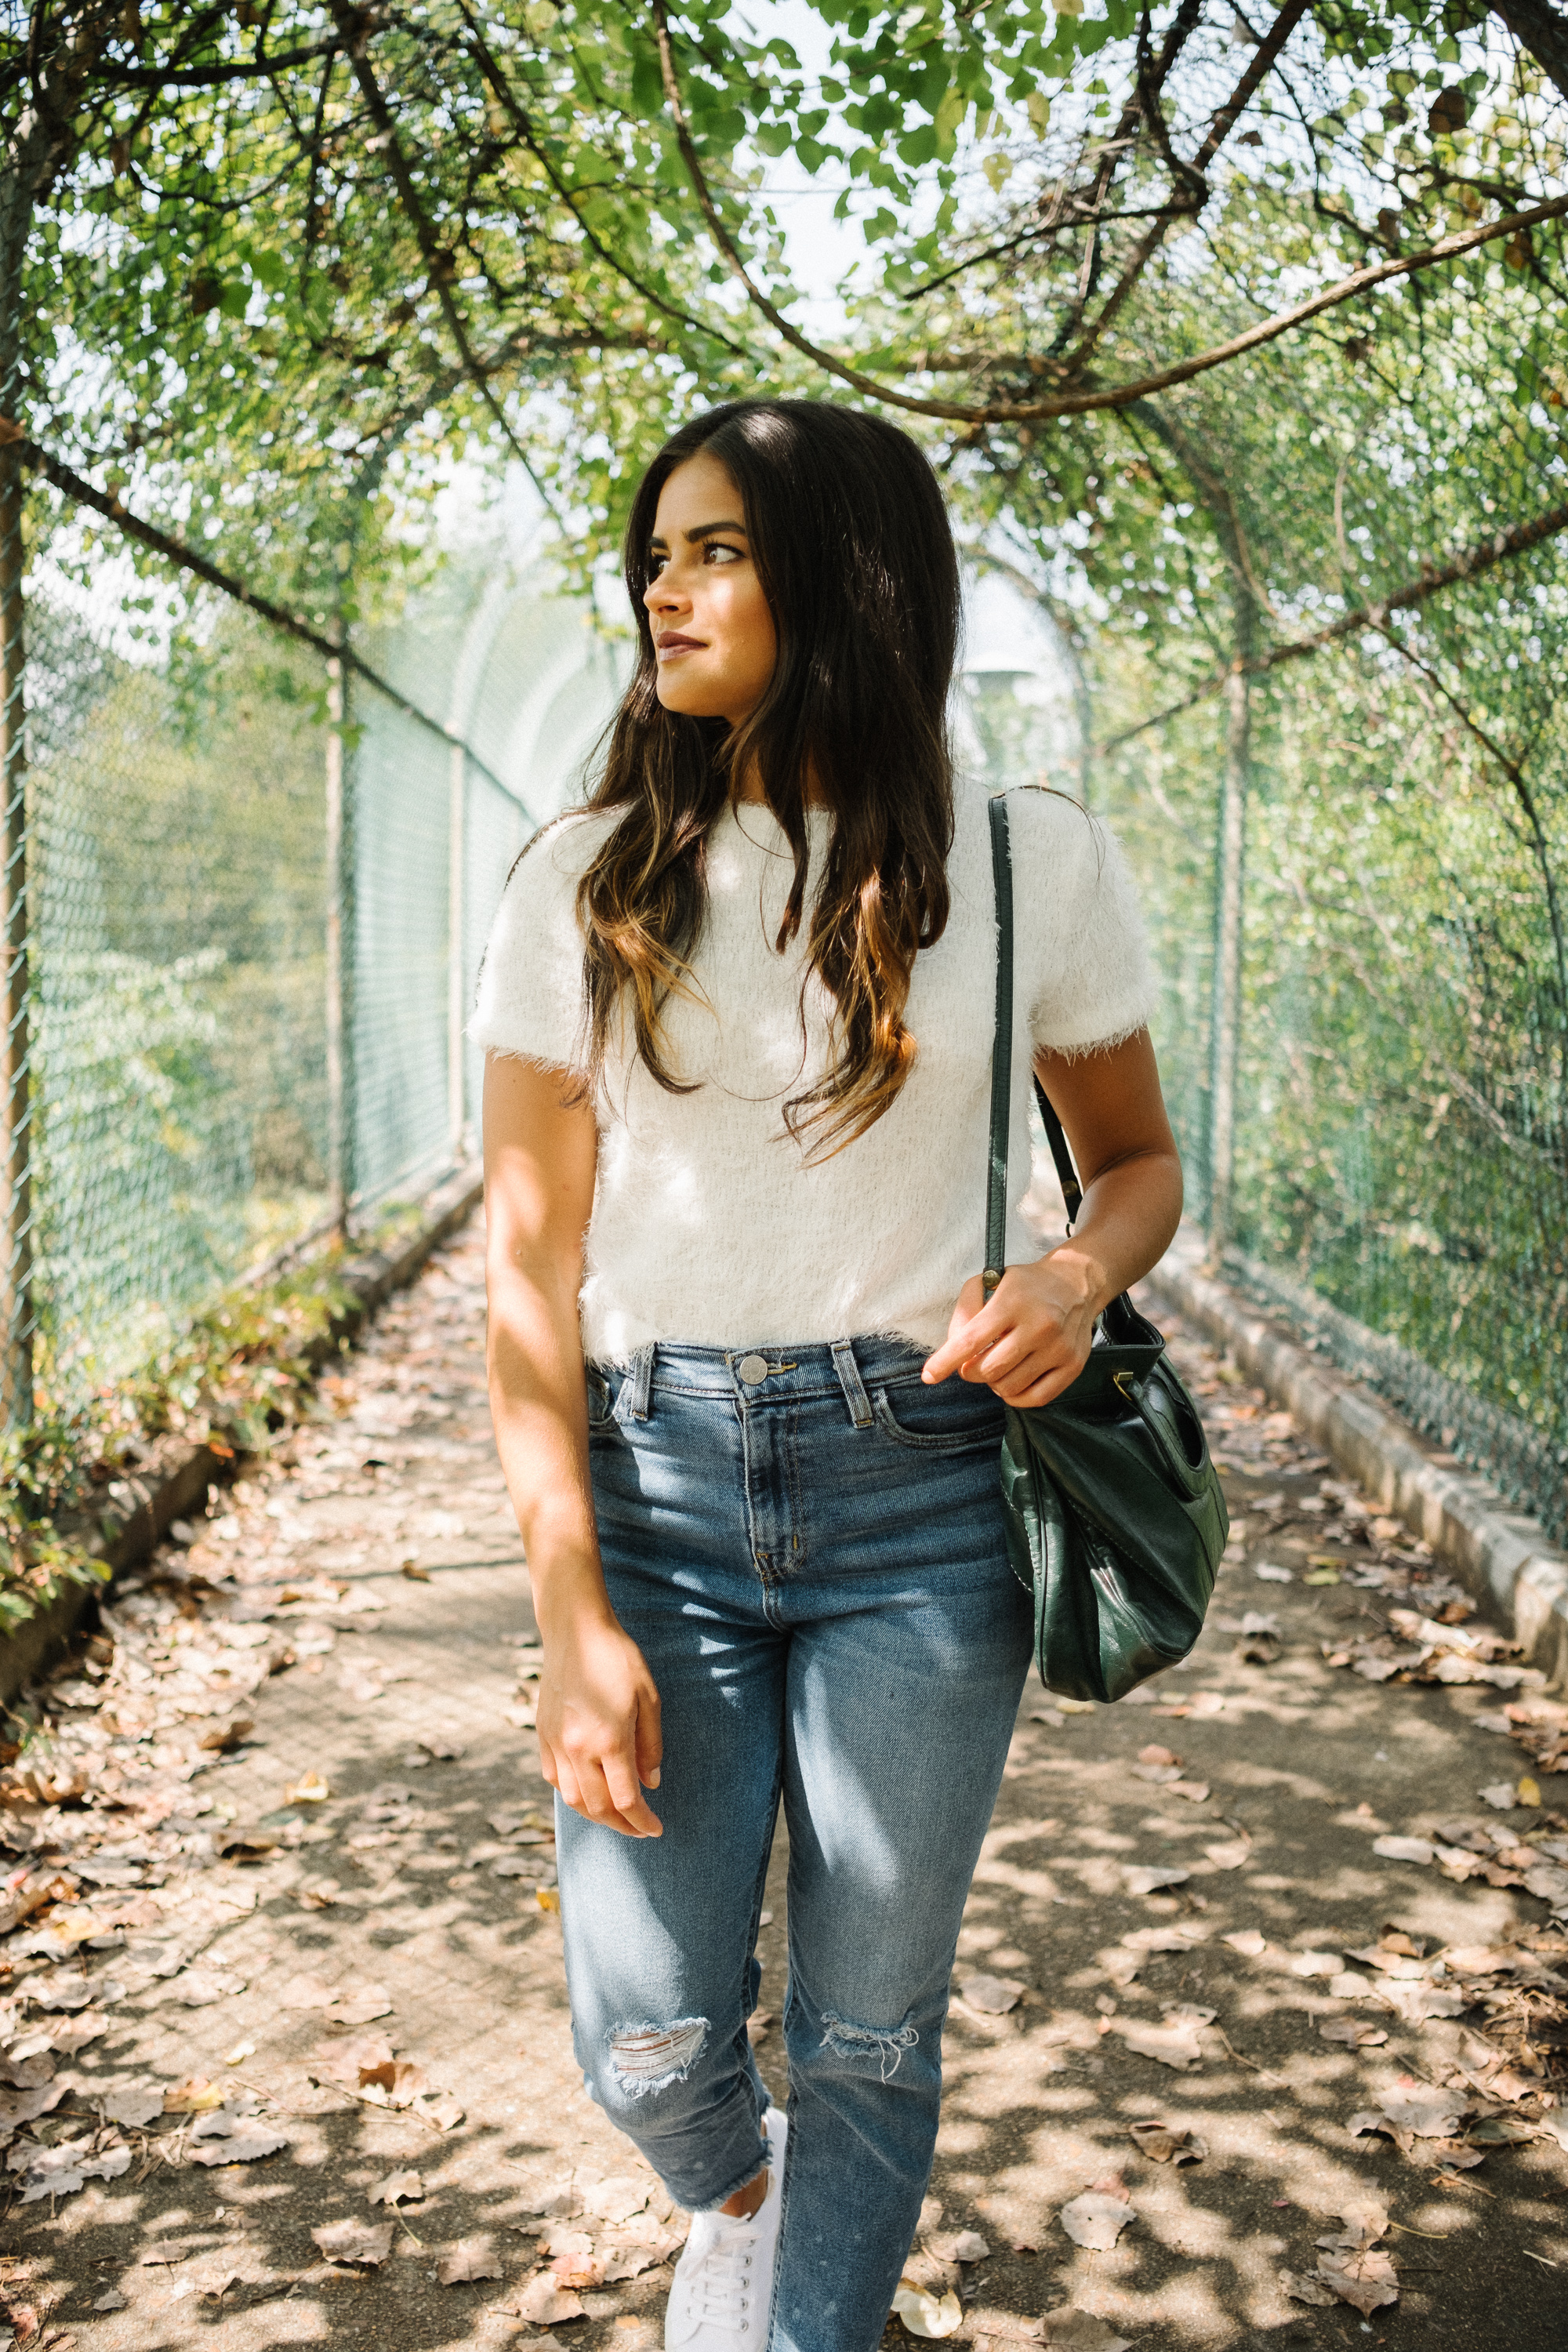 Nashville style blogger, Priya the Blog, fuzzy sweater, white Superga trainers, Fall transitional outfit, transitional Summer outfit, How to wear a fuzzy sweater